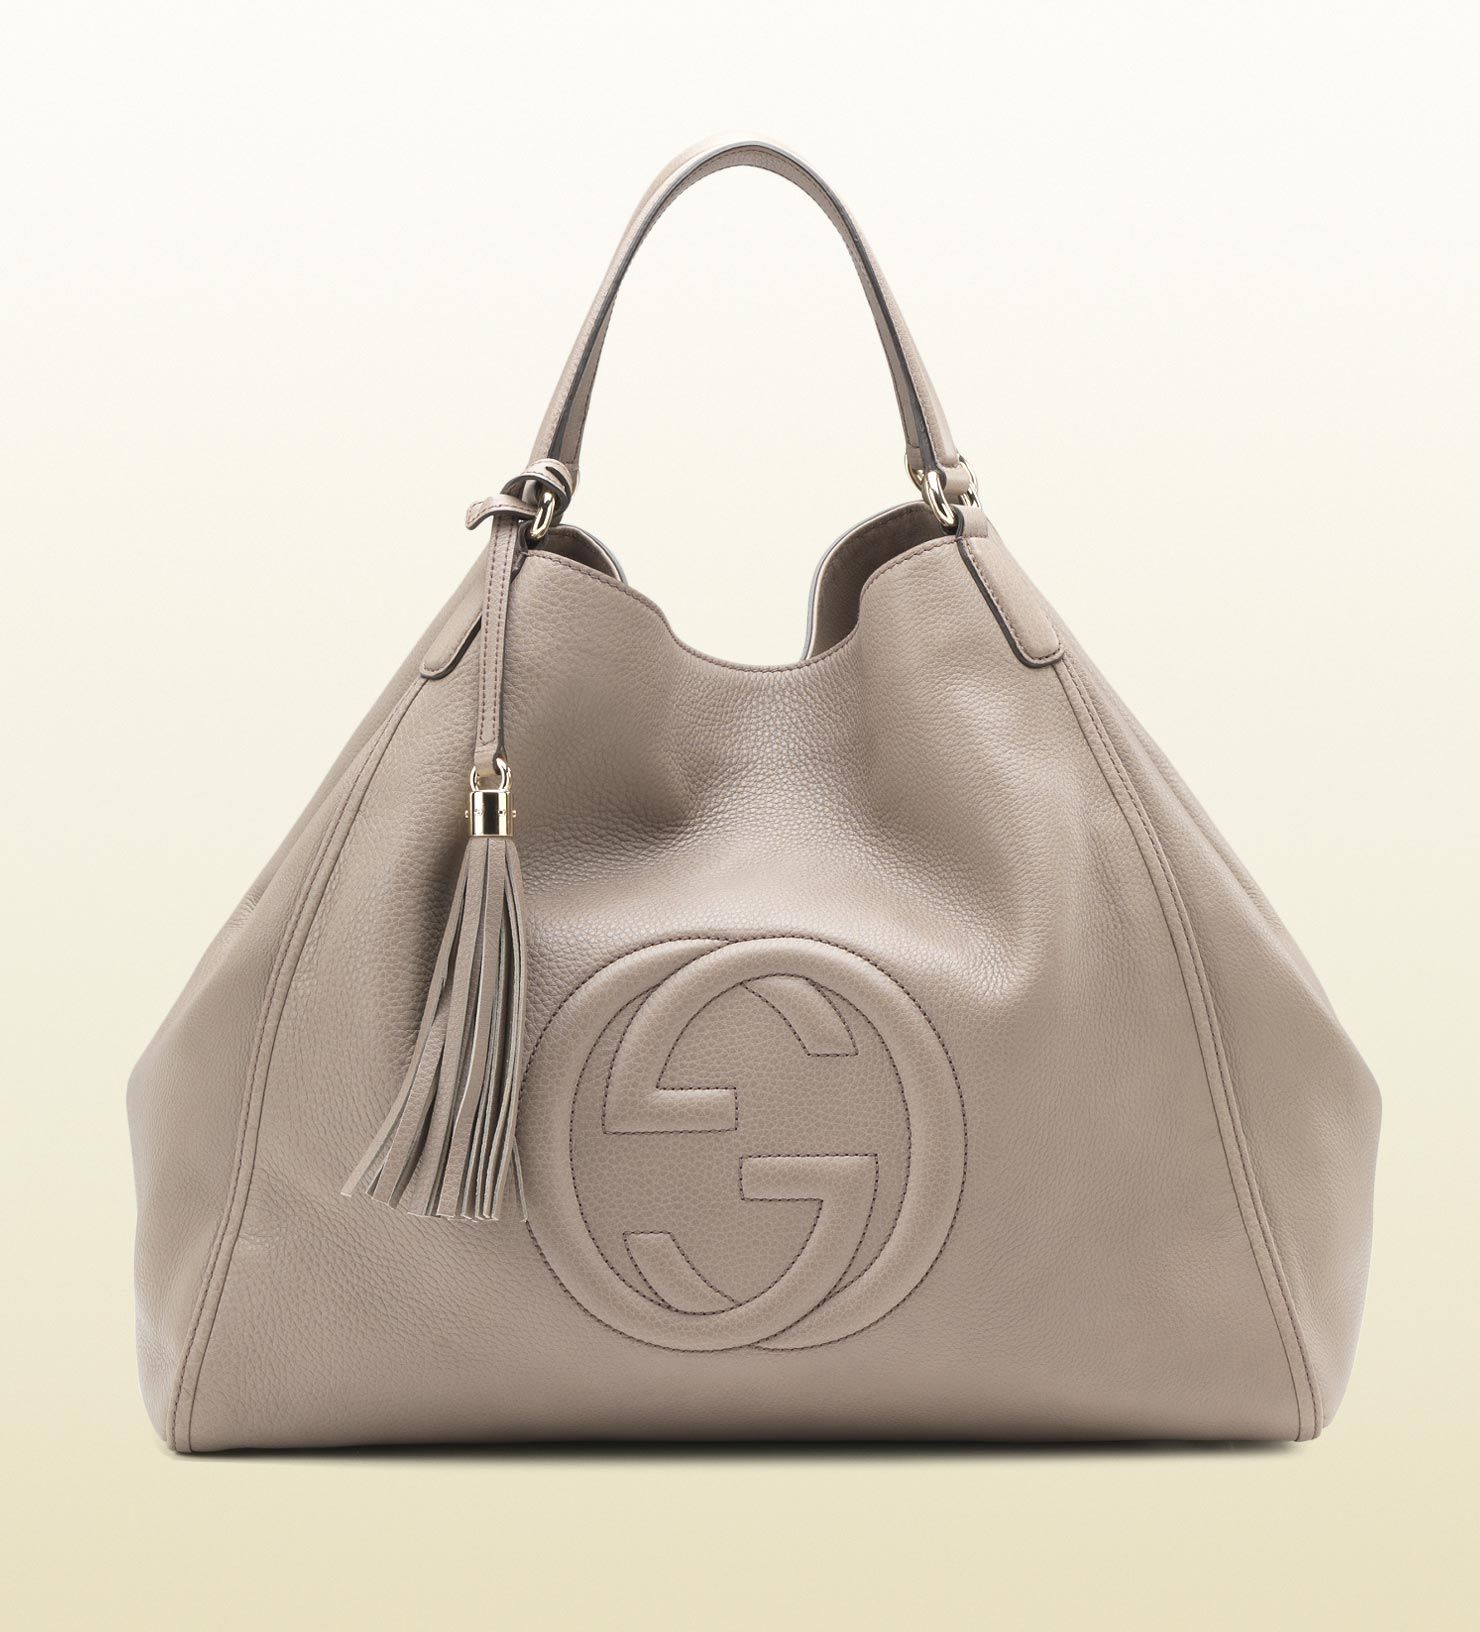 Gucci Soho Bag Fango Color Leather Shoulder